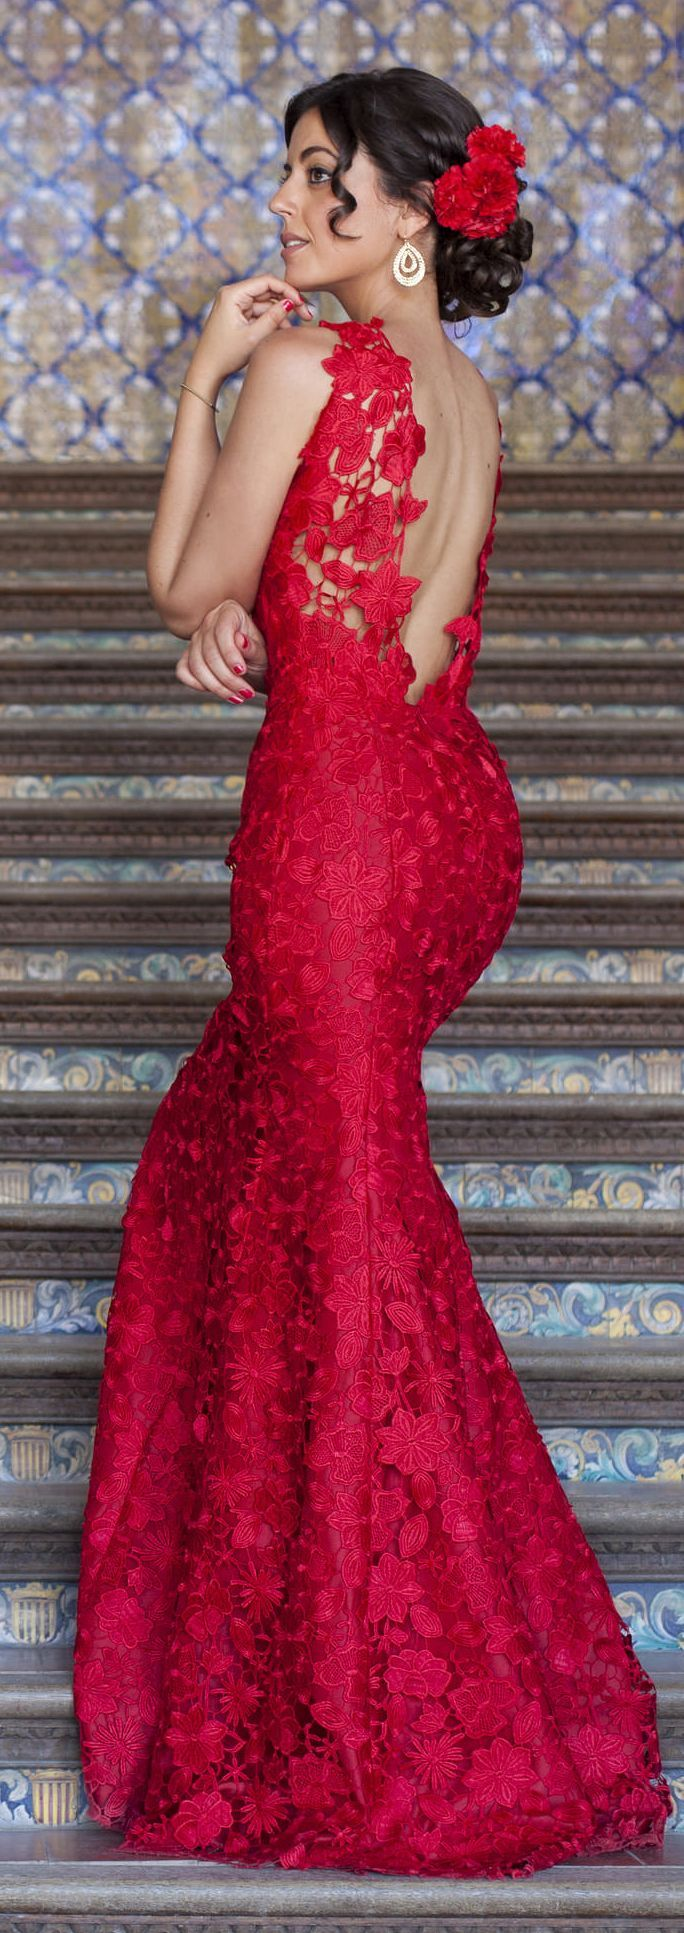 Red Andalusian Gown Cocktail Style